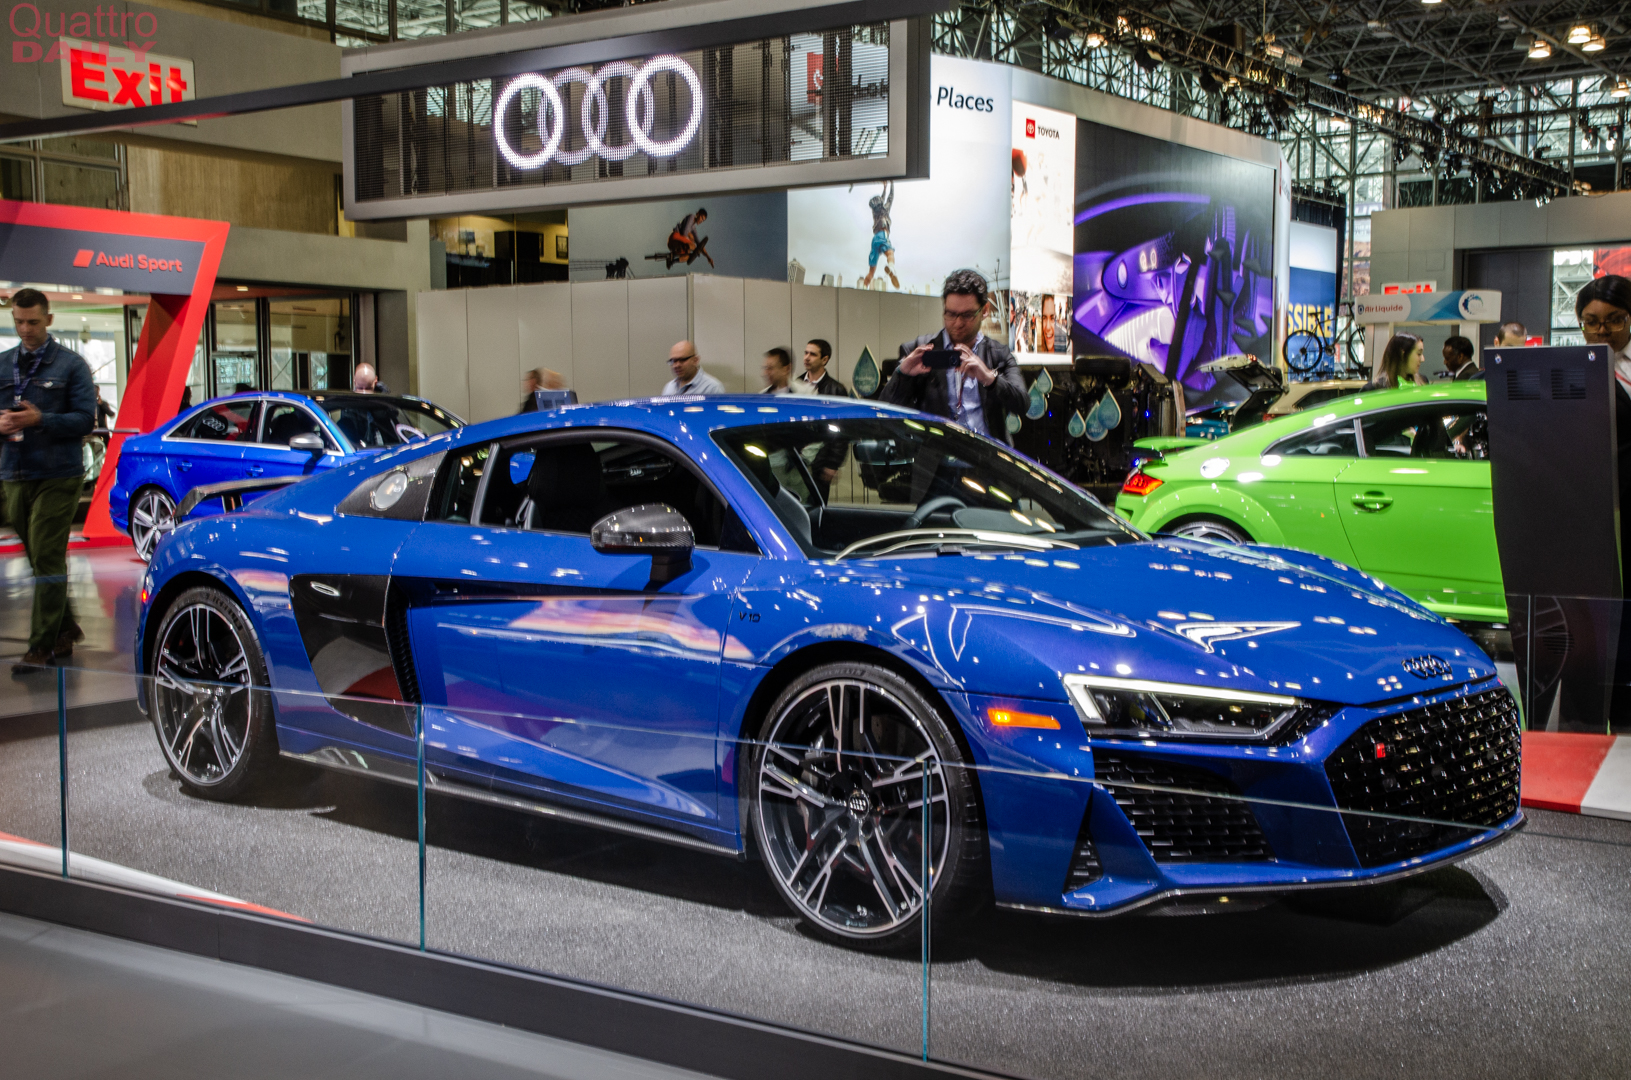 2019 NY Auto Show: Audi R8 Facelift — An Old Friend Drops By